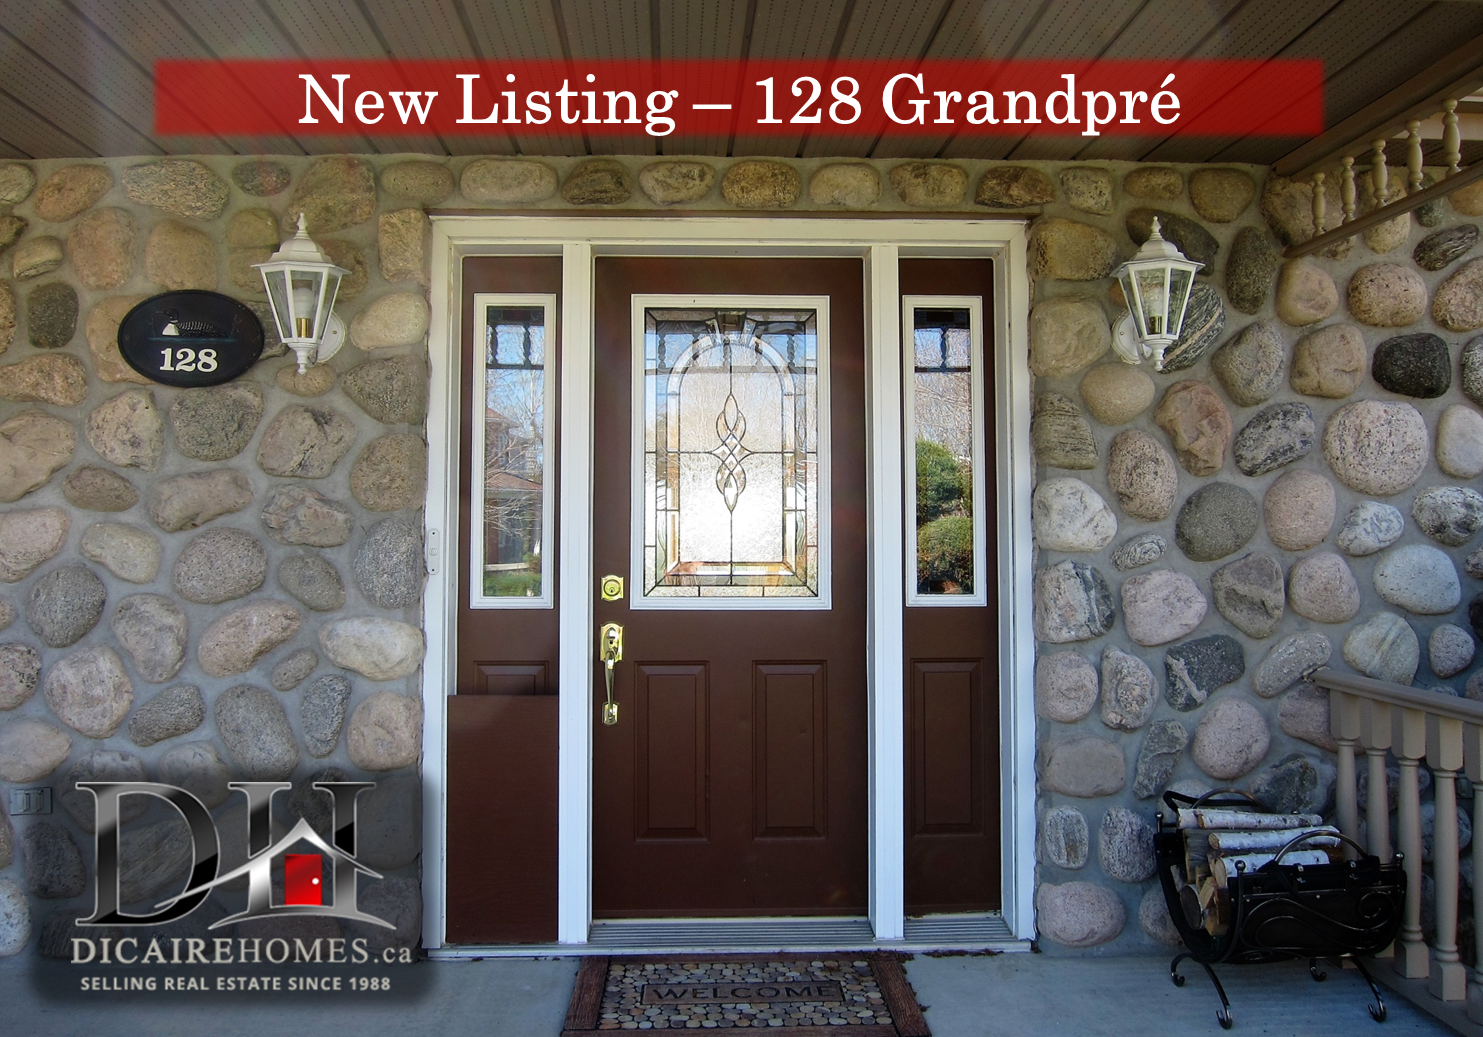 New Listing - Grandpre.png